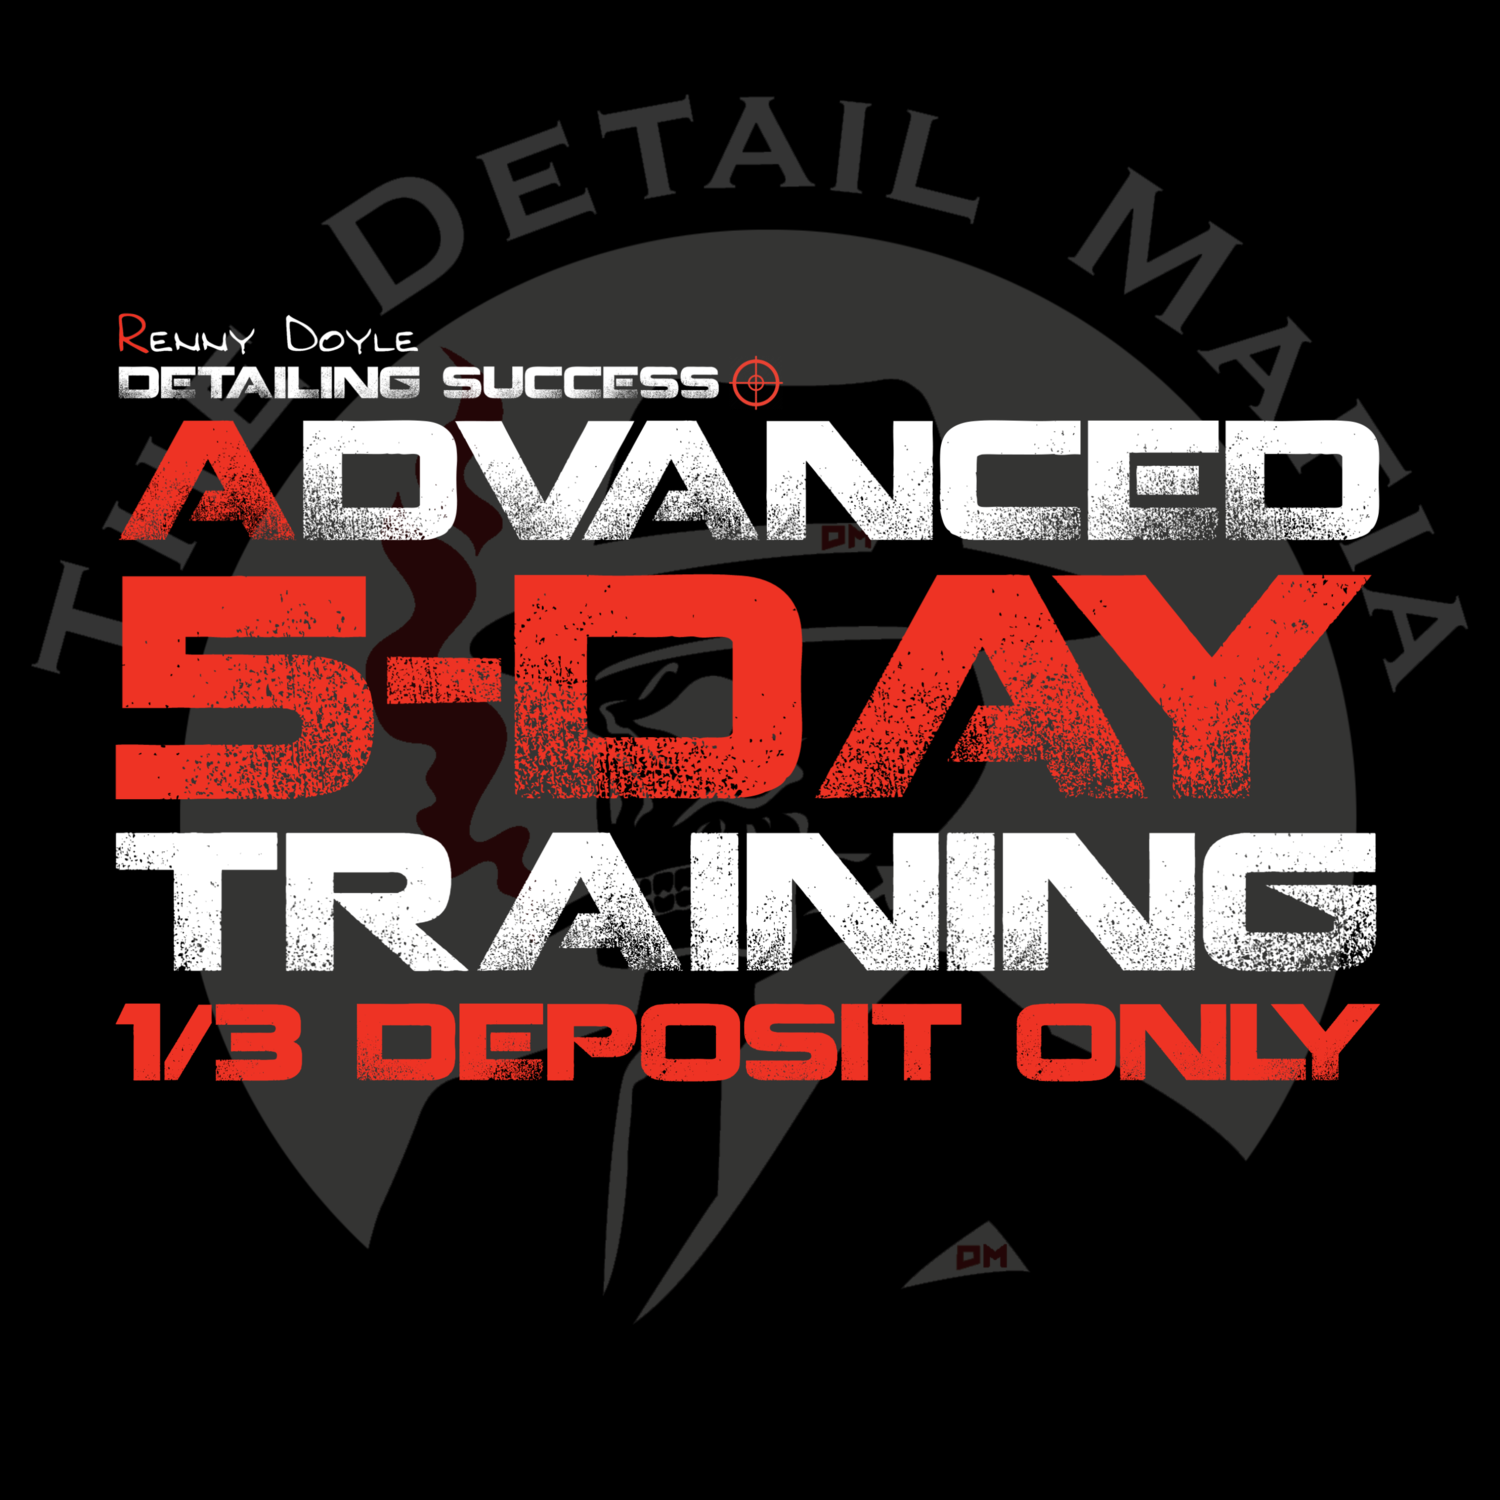 Advanced 5-Day Training Deposit Only